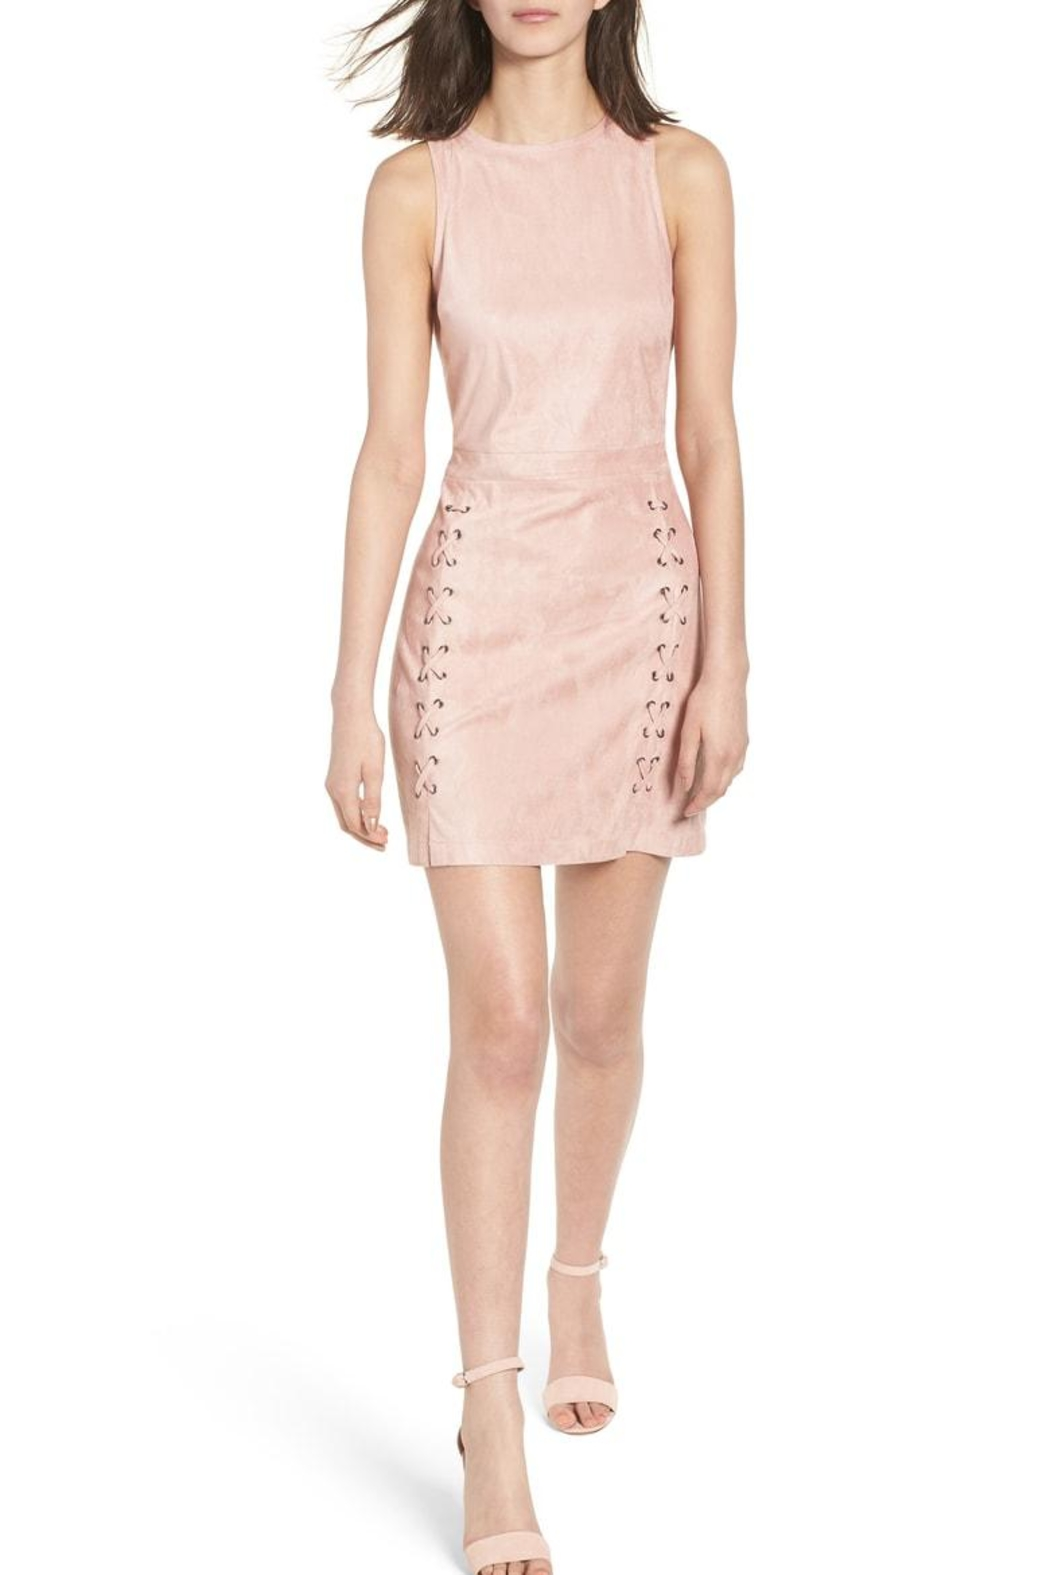 Cupcakes and Cashmere Daton Suede Dress - Main Image